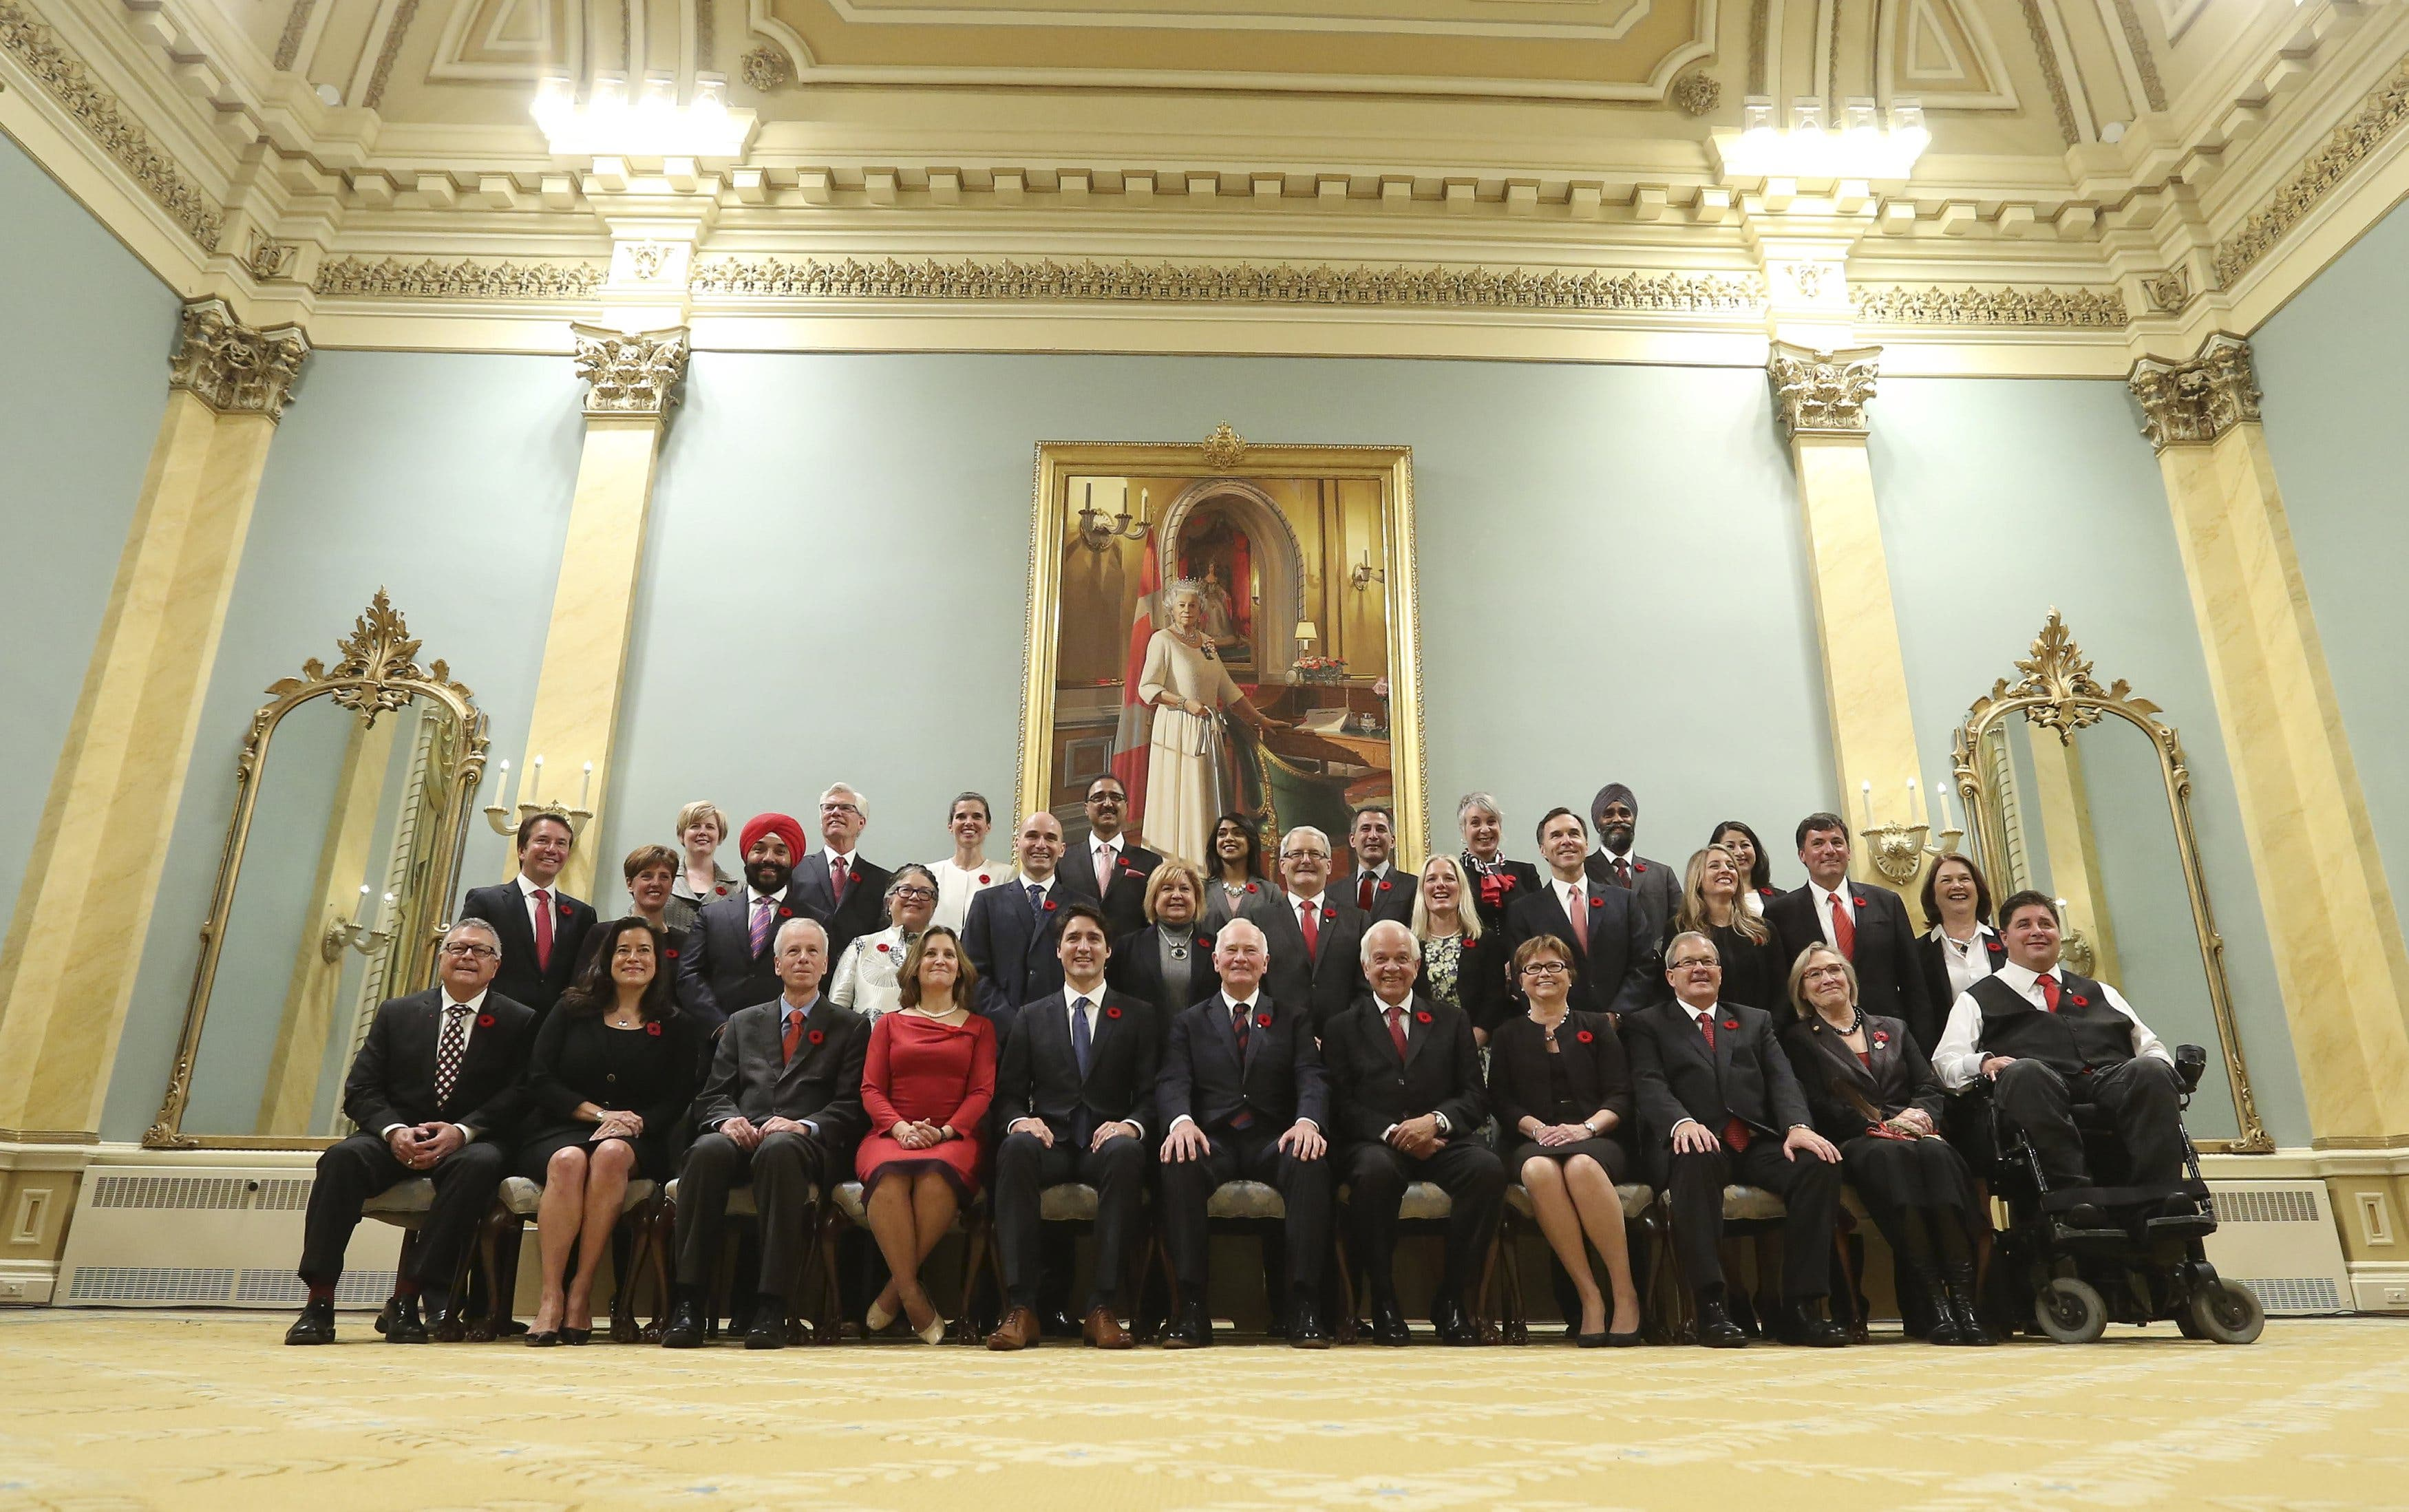 Canada's new PM Trudeau poses with his cabinet after their swearing-in ceremony at Rideau Hall in Ottawa. (Reuters)